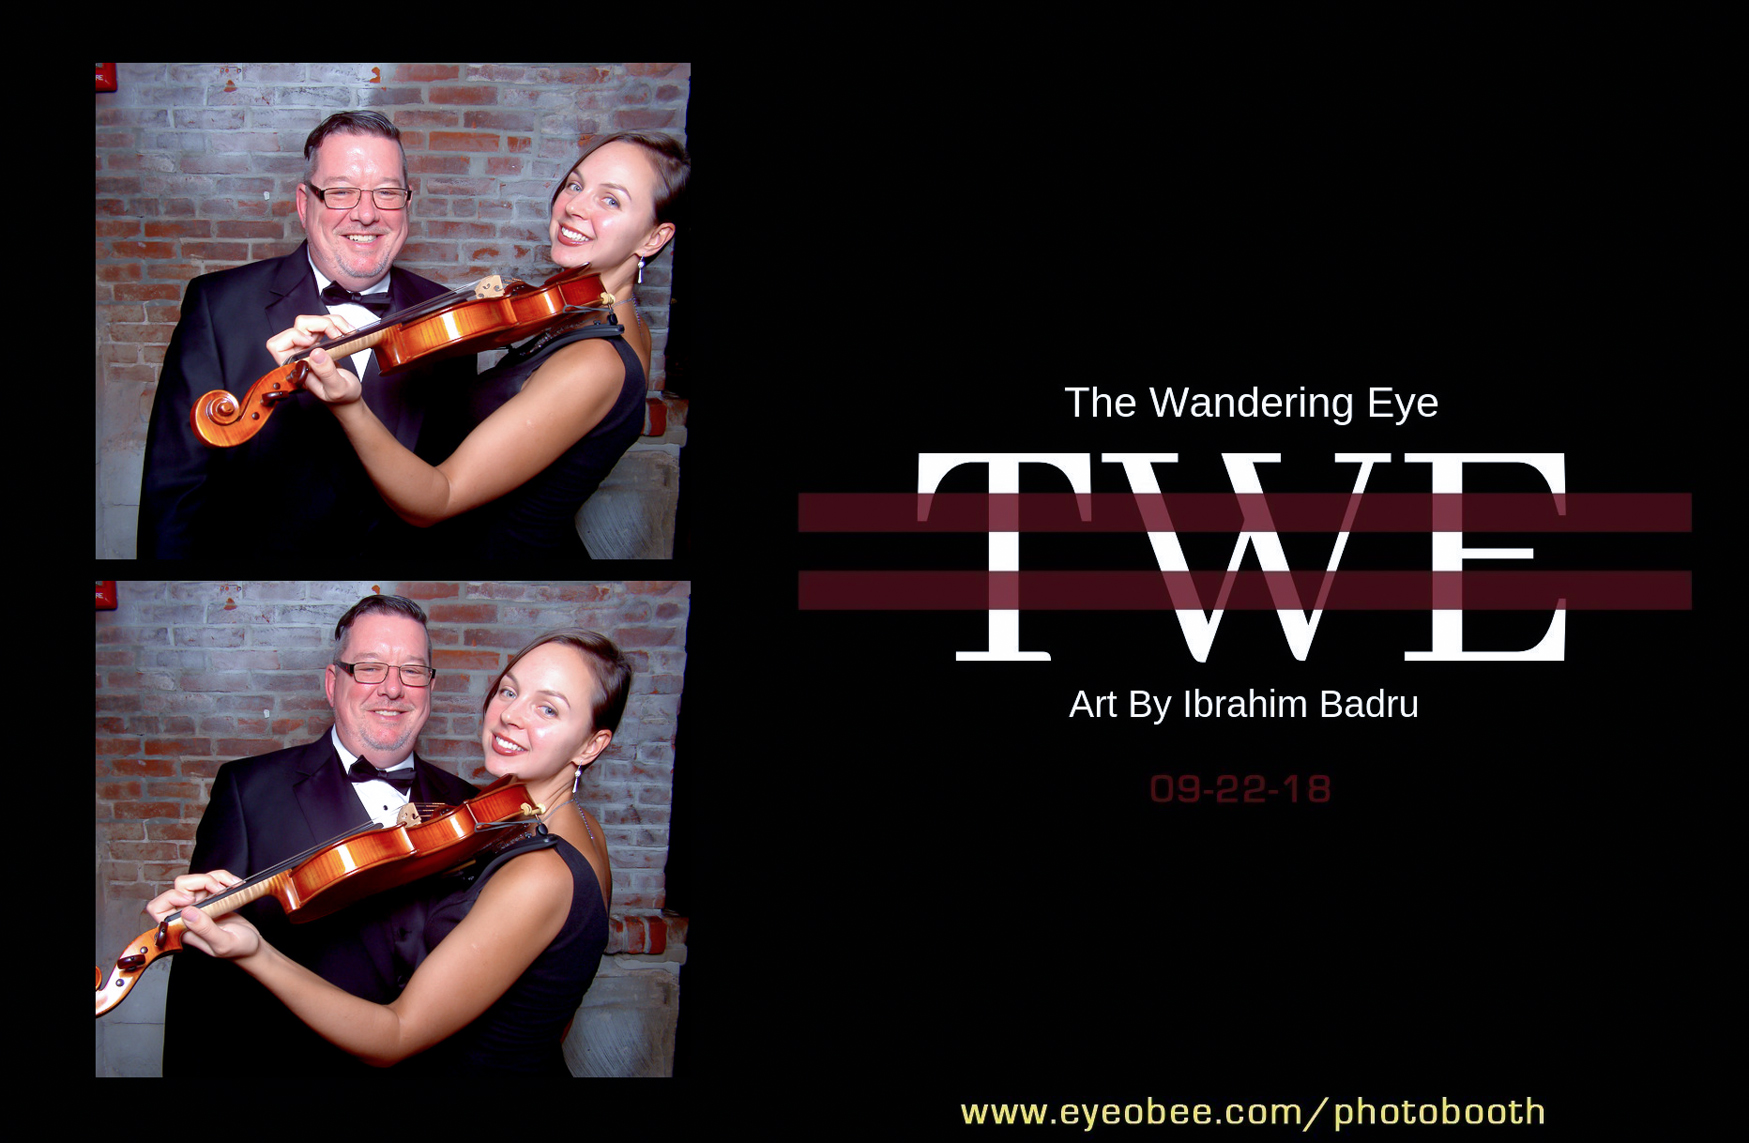 eyeobee PhotoBooth The Wandering eye art by Ibrahim Badru-0-35.jpg